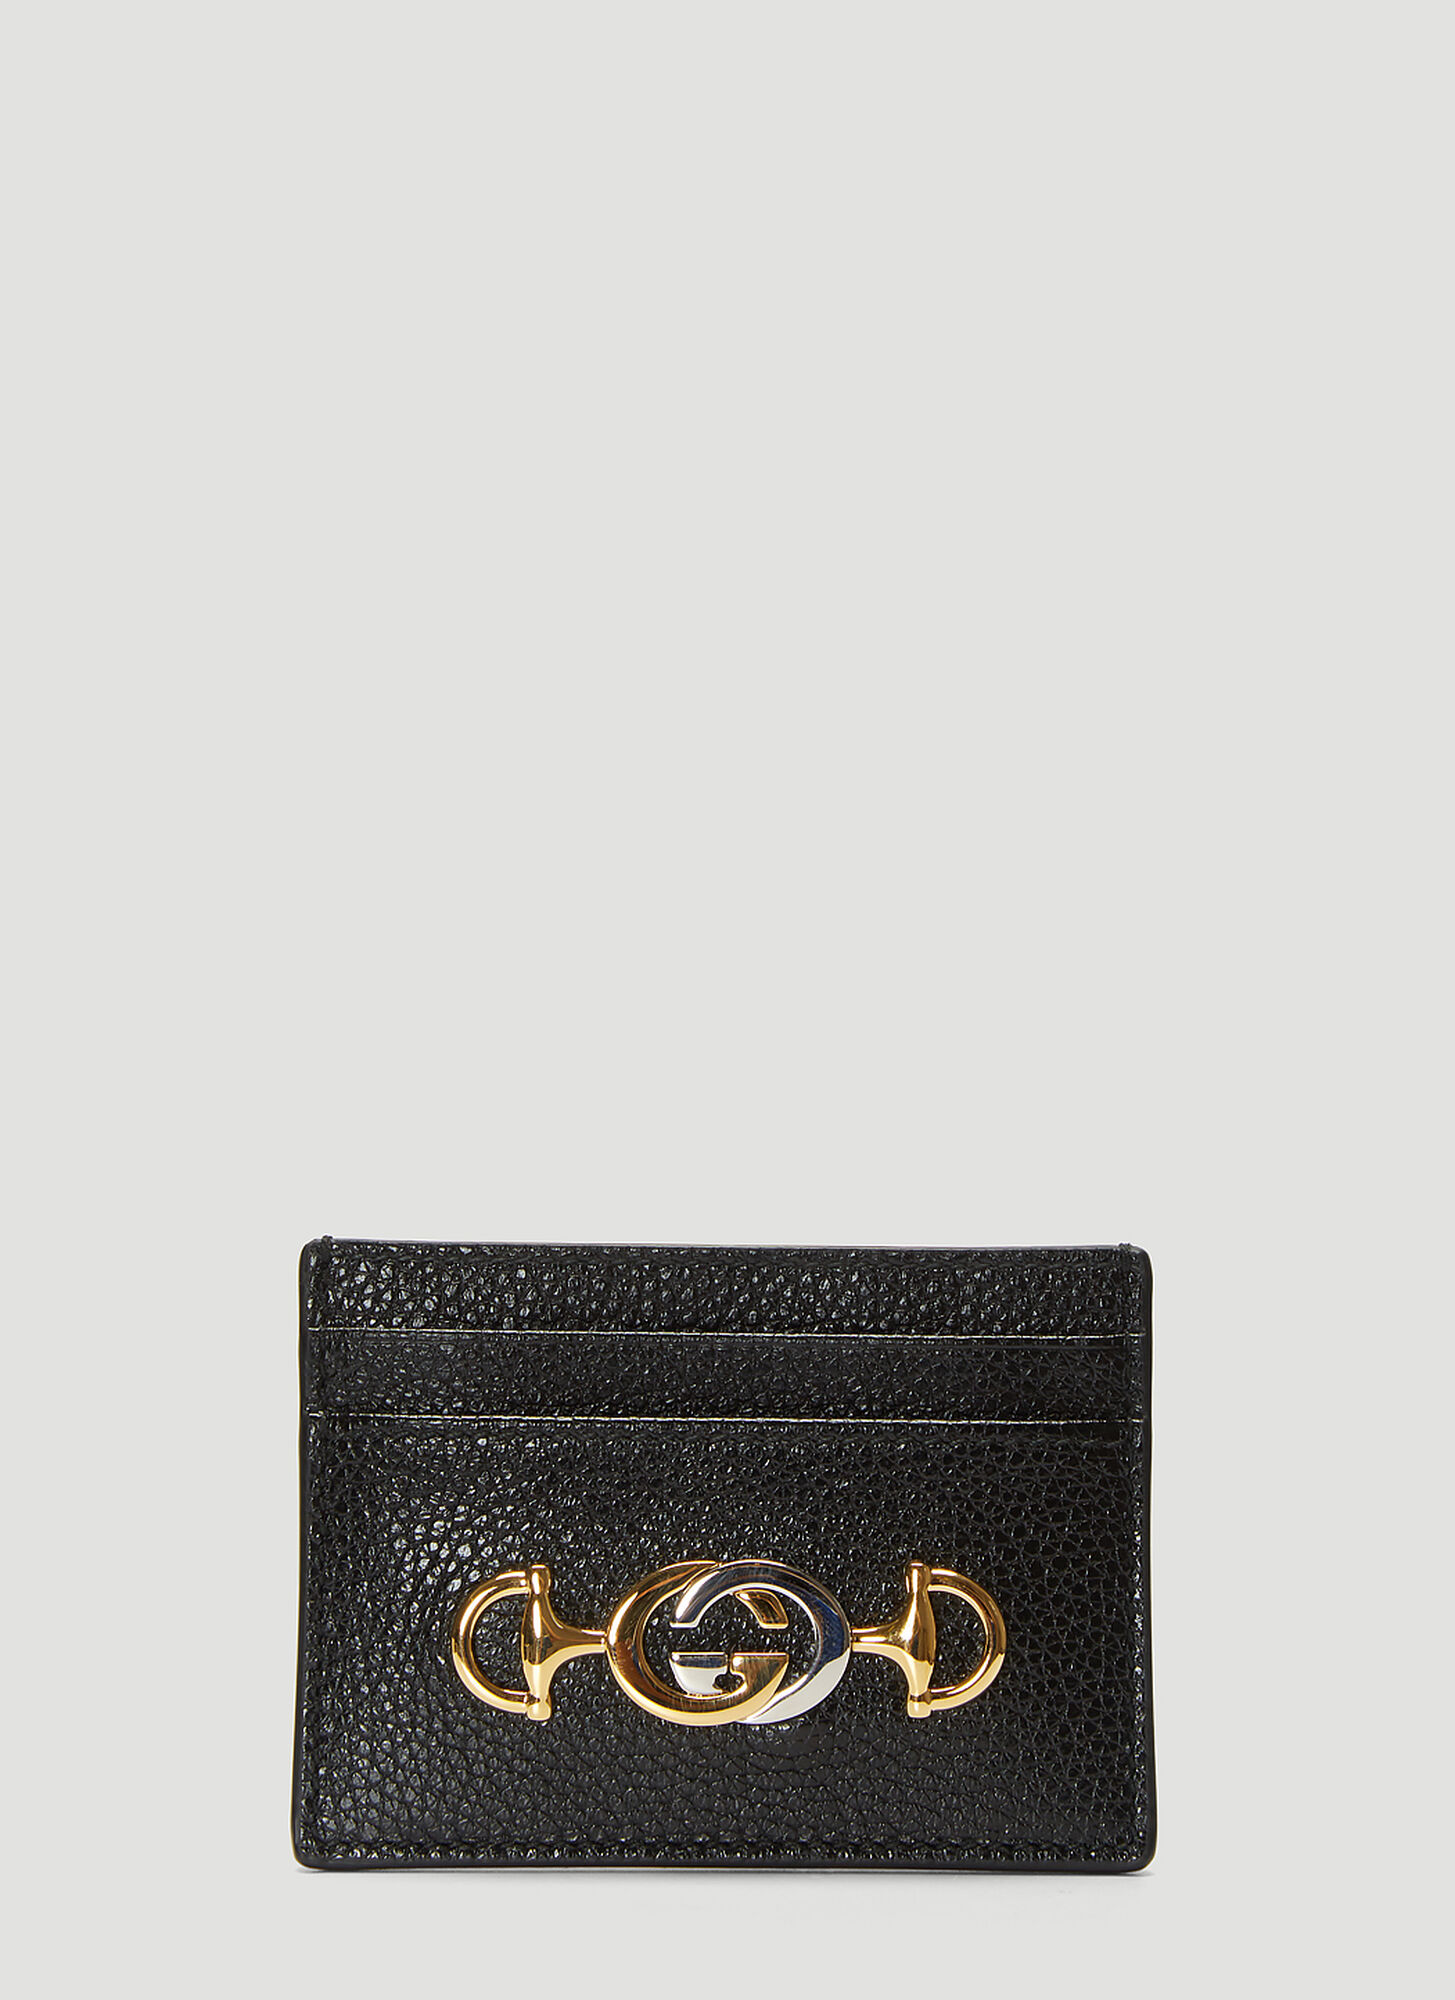 Gucci Interlocking G Card Case in Black